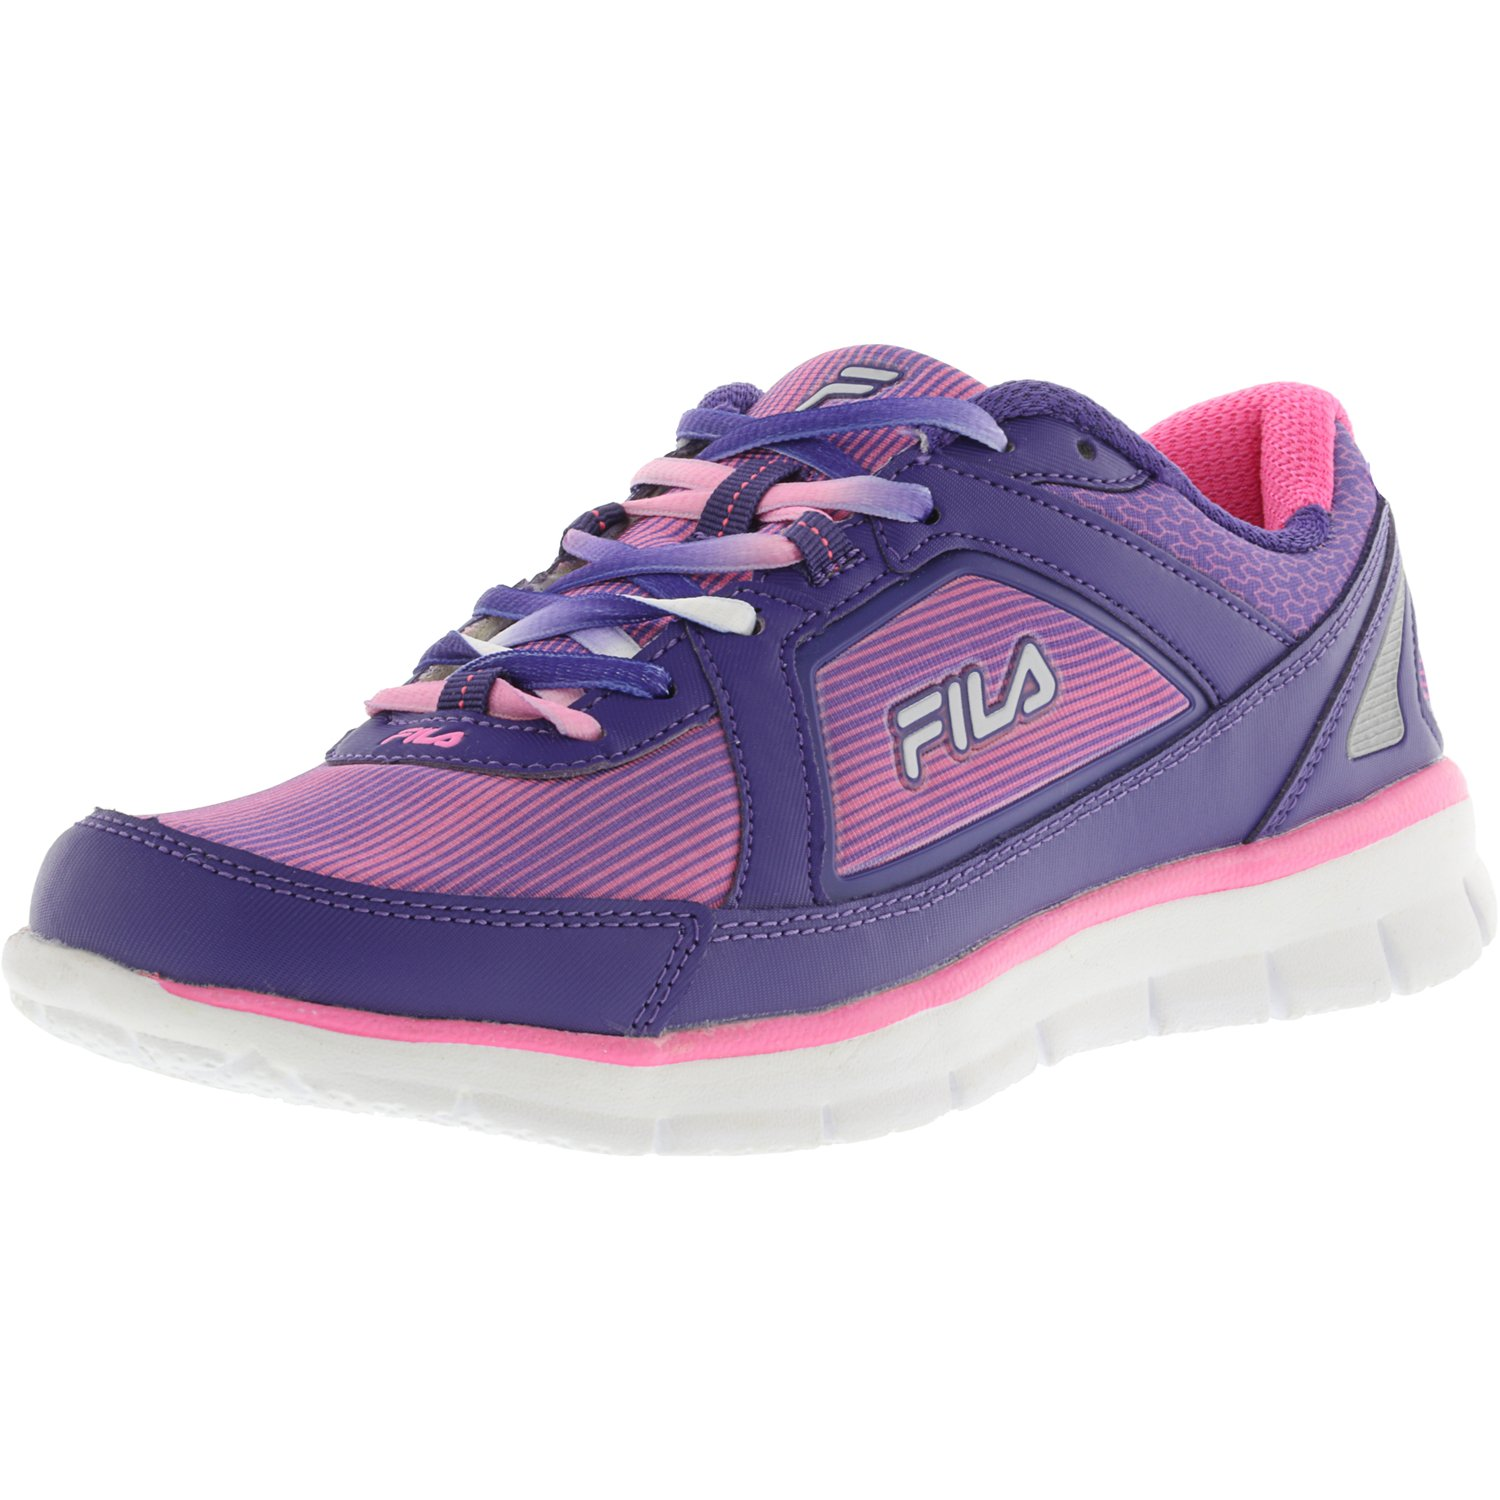 Fila Women's Finest Hour Neoprene Classic Blue   Bluefish Knockout Pink Ankle-High Running Shoe 9M by Fila